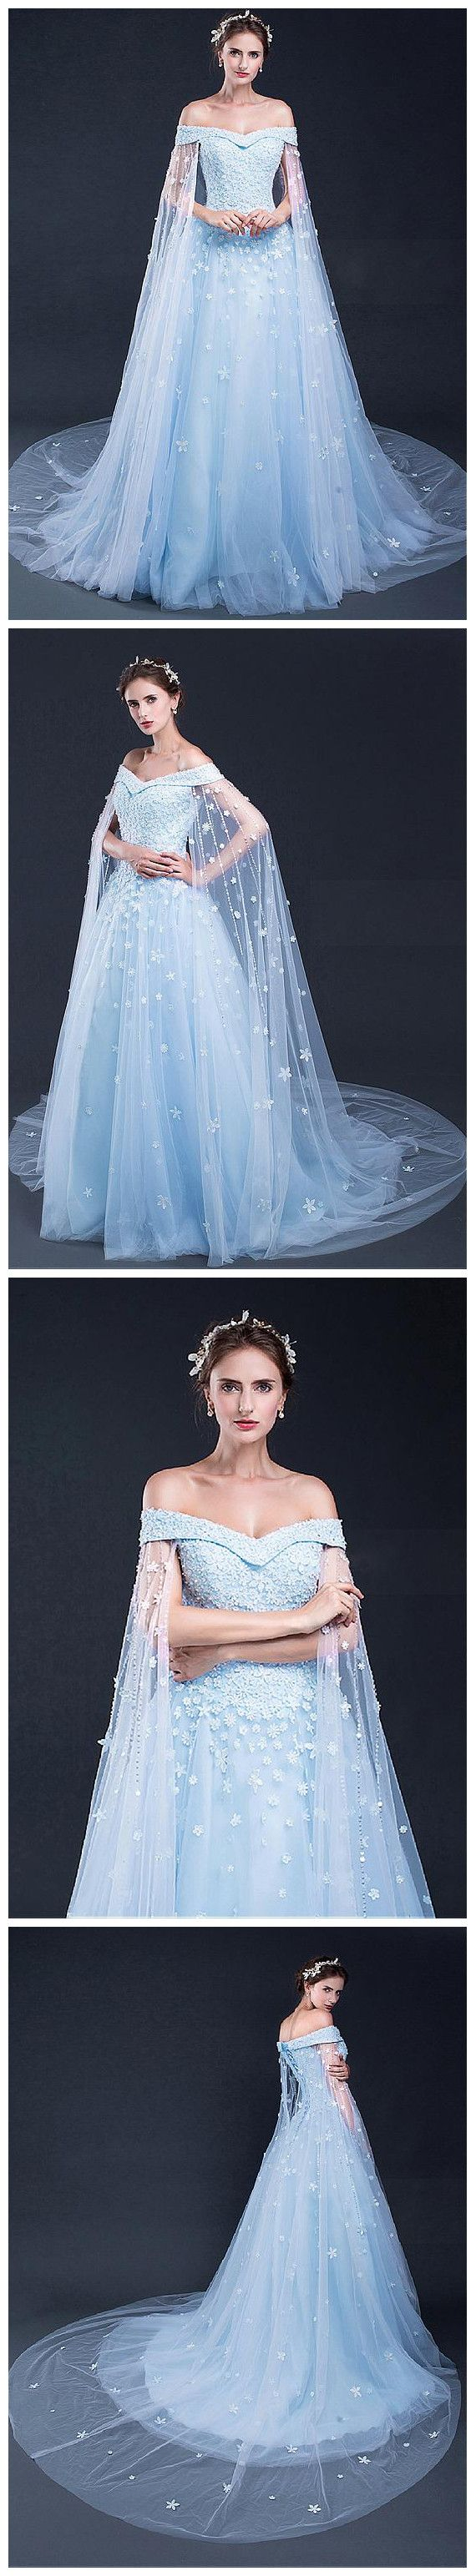 prom dresses long,prom dresses modest,prom dresses off shoulder,prom dresses lace,prom dresses cheap,prom dresses blue,beautiful prom dresses,prom dresses 2018,prom dresses a line  #amyprom #longpromdress #fashion #blue #prom #formal